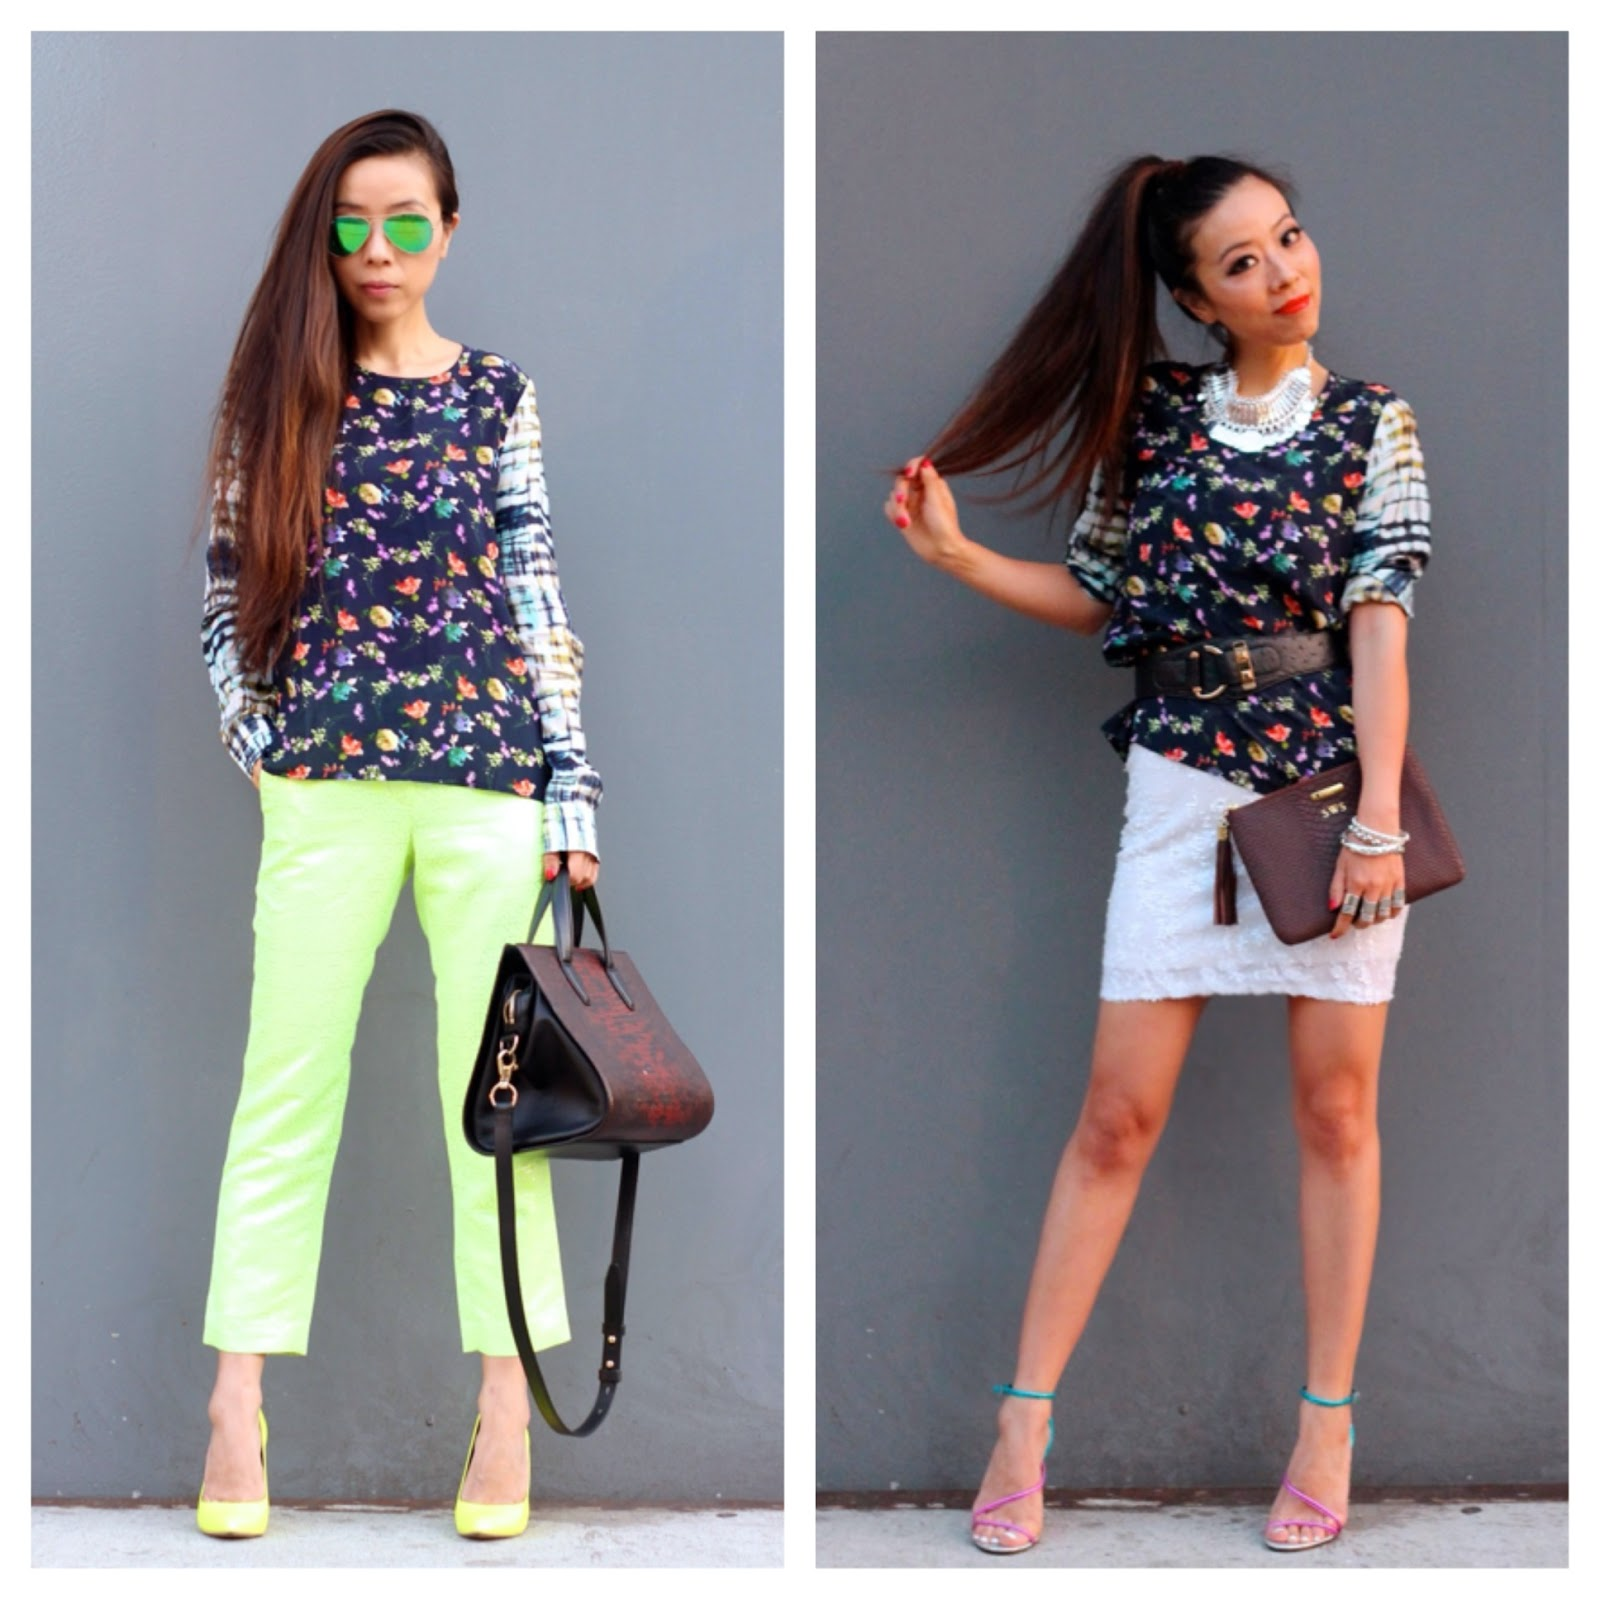 http://www.shallwesasa.com/2014/09/how-to-wear-one-blouse-from-day-to-night-piperlime-collection.html